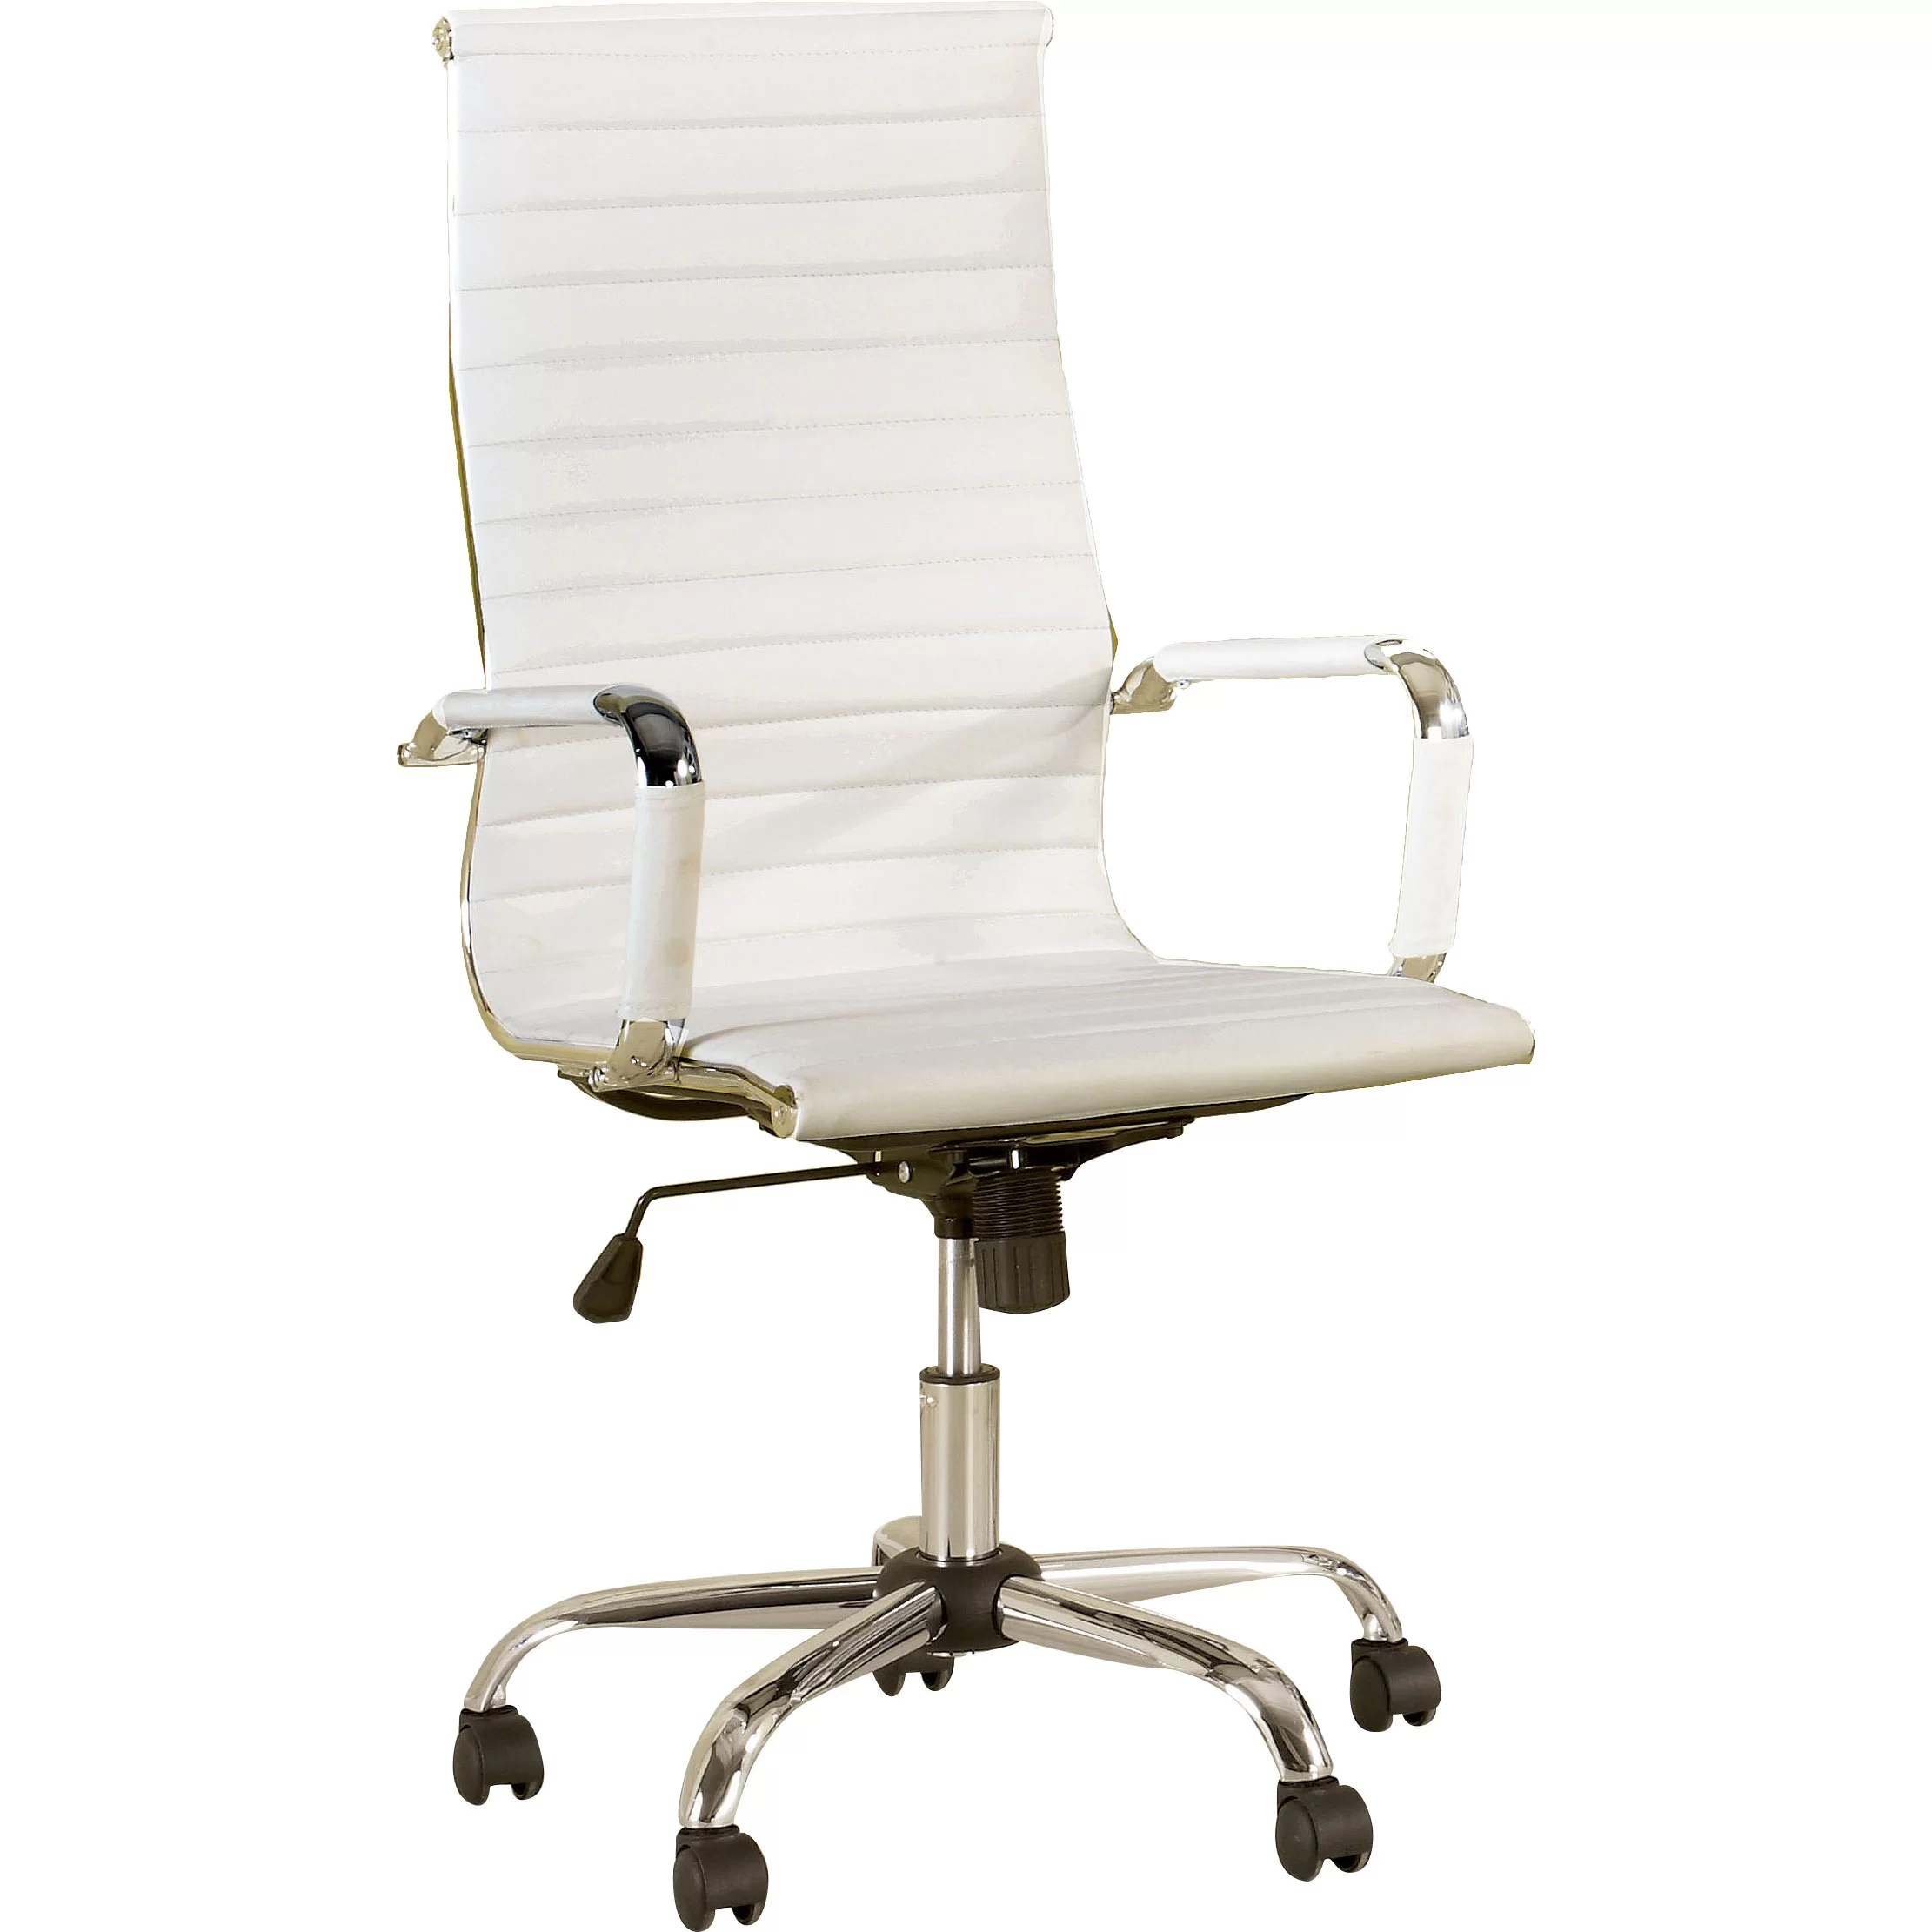 Chair With Casters Hokku Designs Dorynn High Back Office Chair With Casters